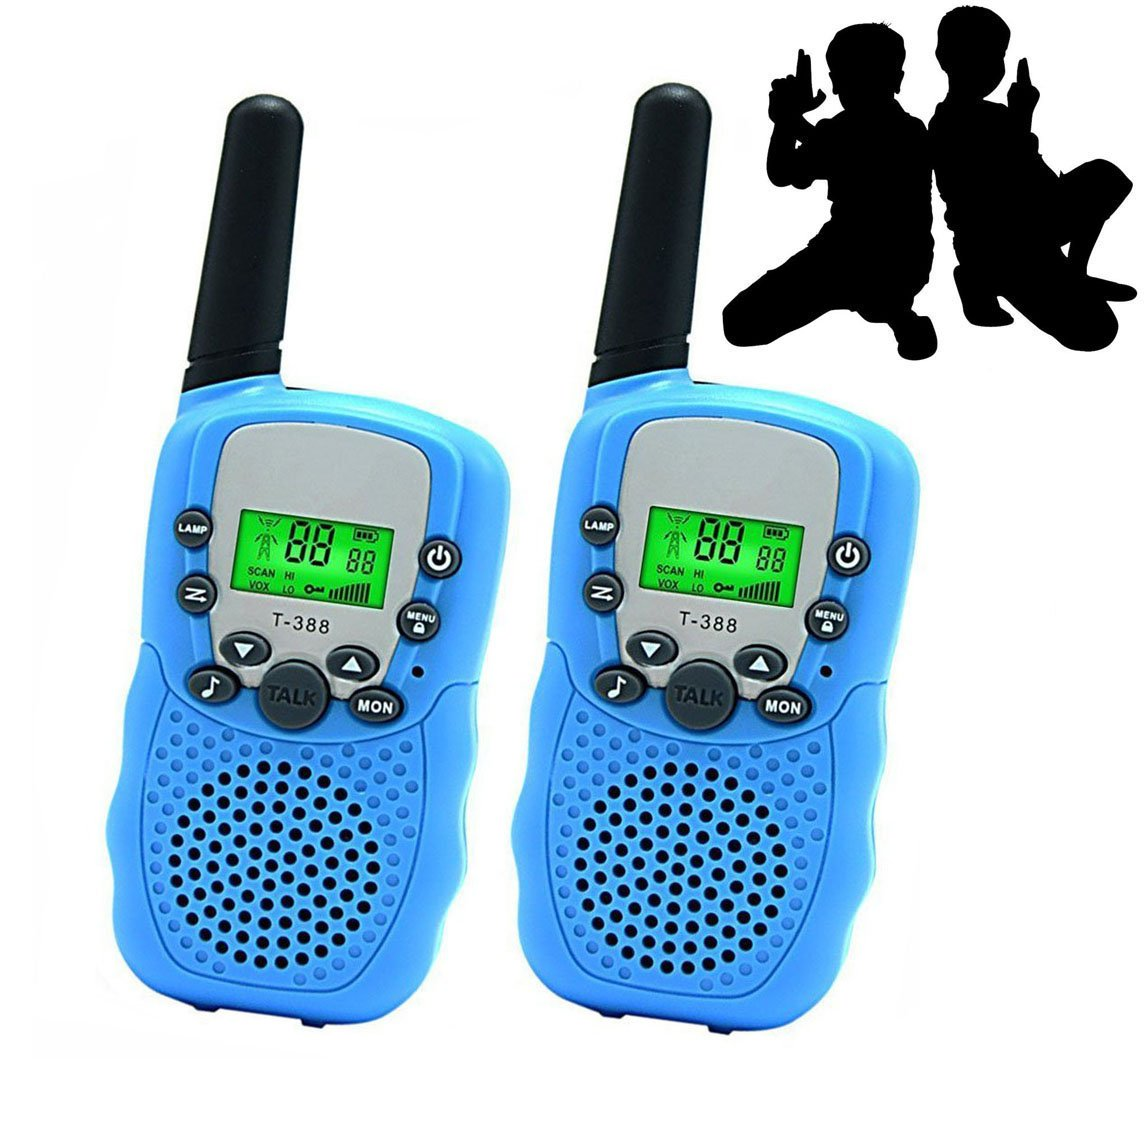 JRD BS WINL Toys For 3 15 Year Old Boy Gifts Teen Girls Boys Walkie Talkies Kids Birthday Presents1PairBlack